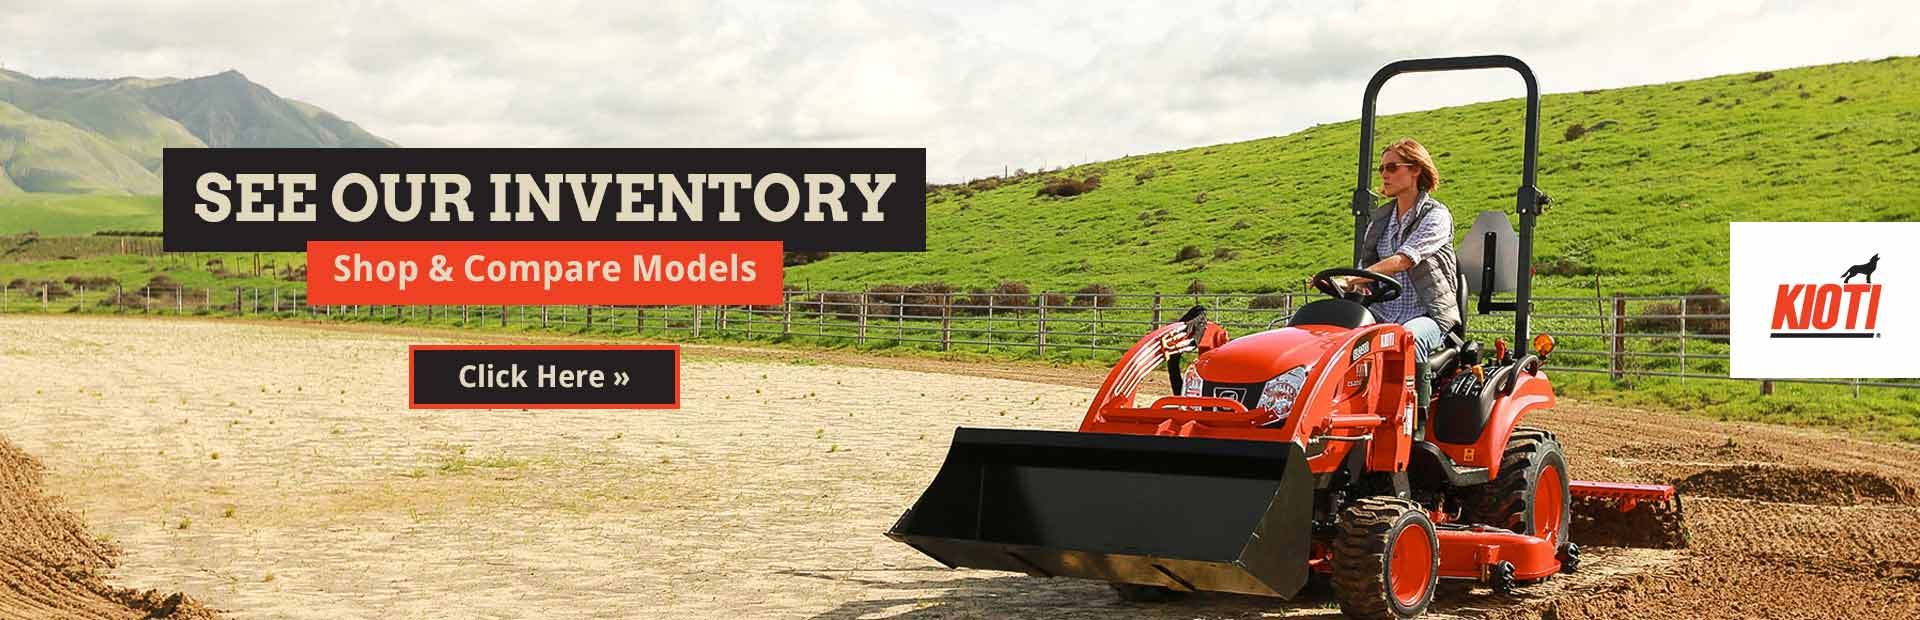 KIOTI Tractors: Click here to view our brochures.